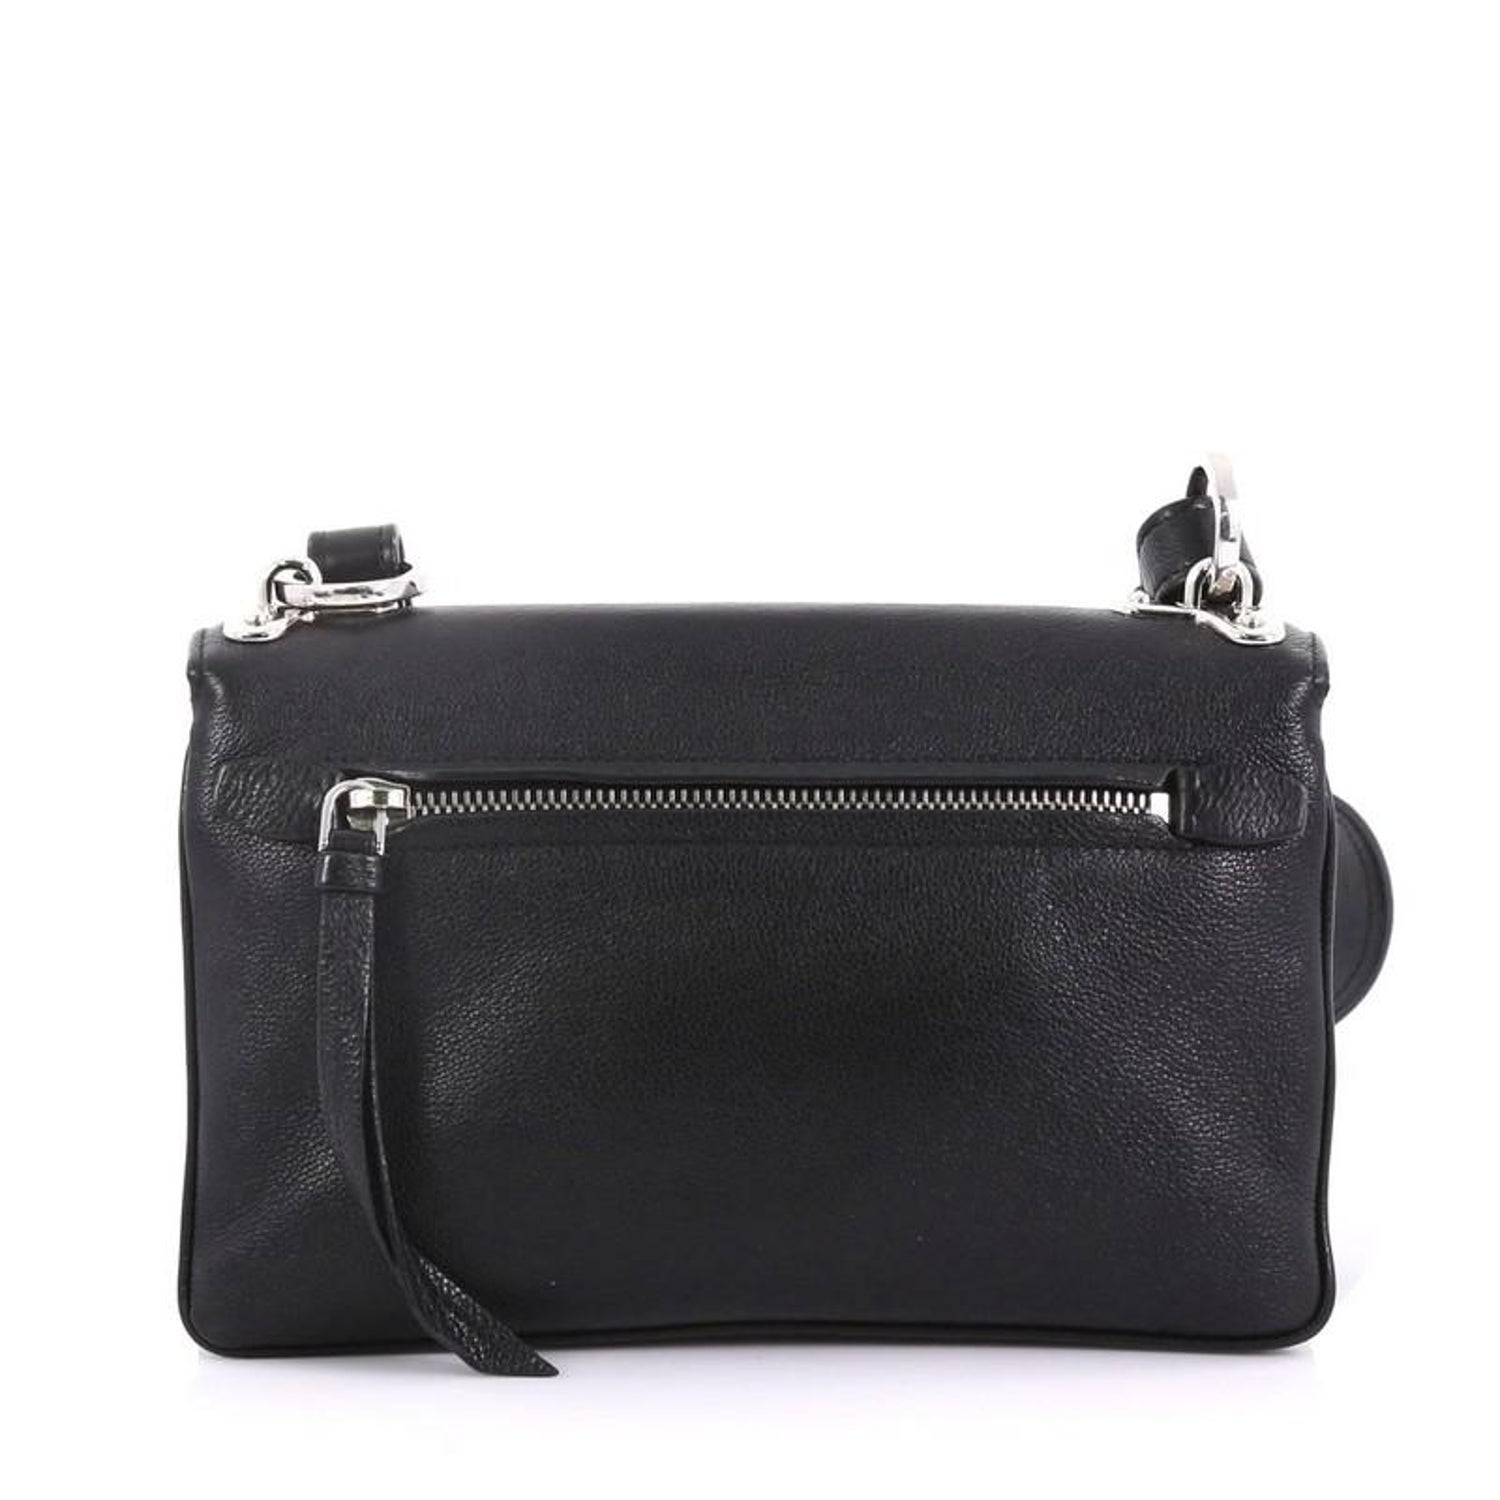 bb20ac6a6d4 Prada Robot Flap Shoulder Bag Mixed Media Leather Small For Sale at 1stdibs